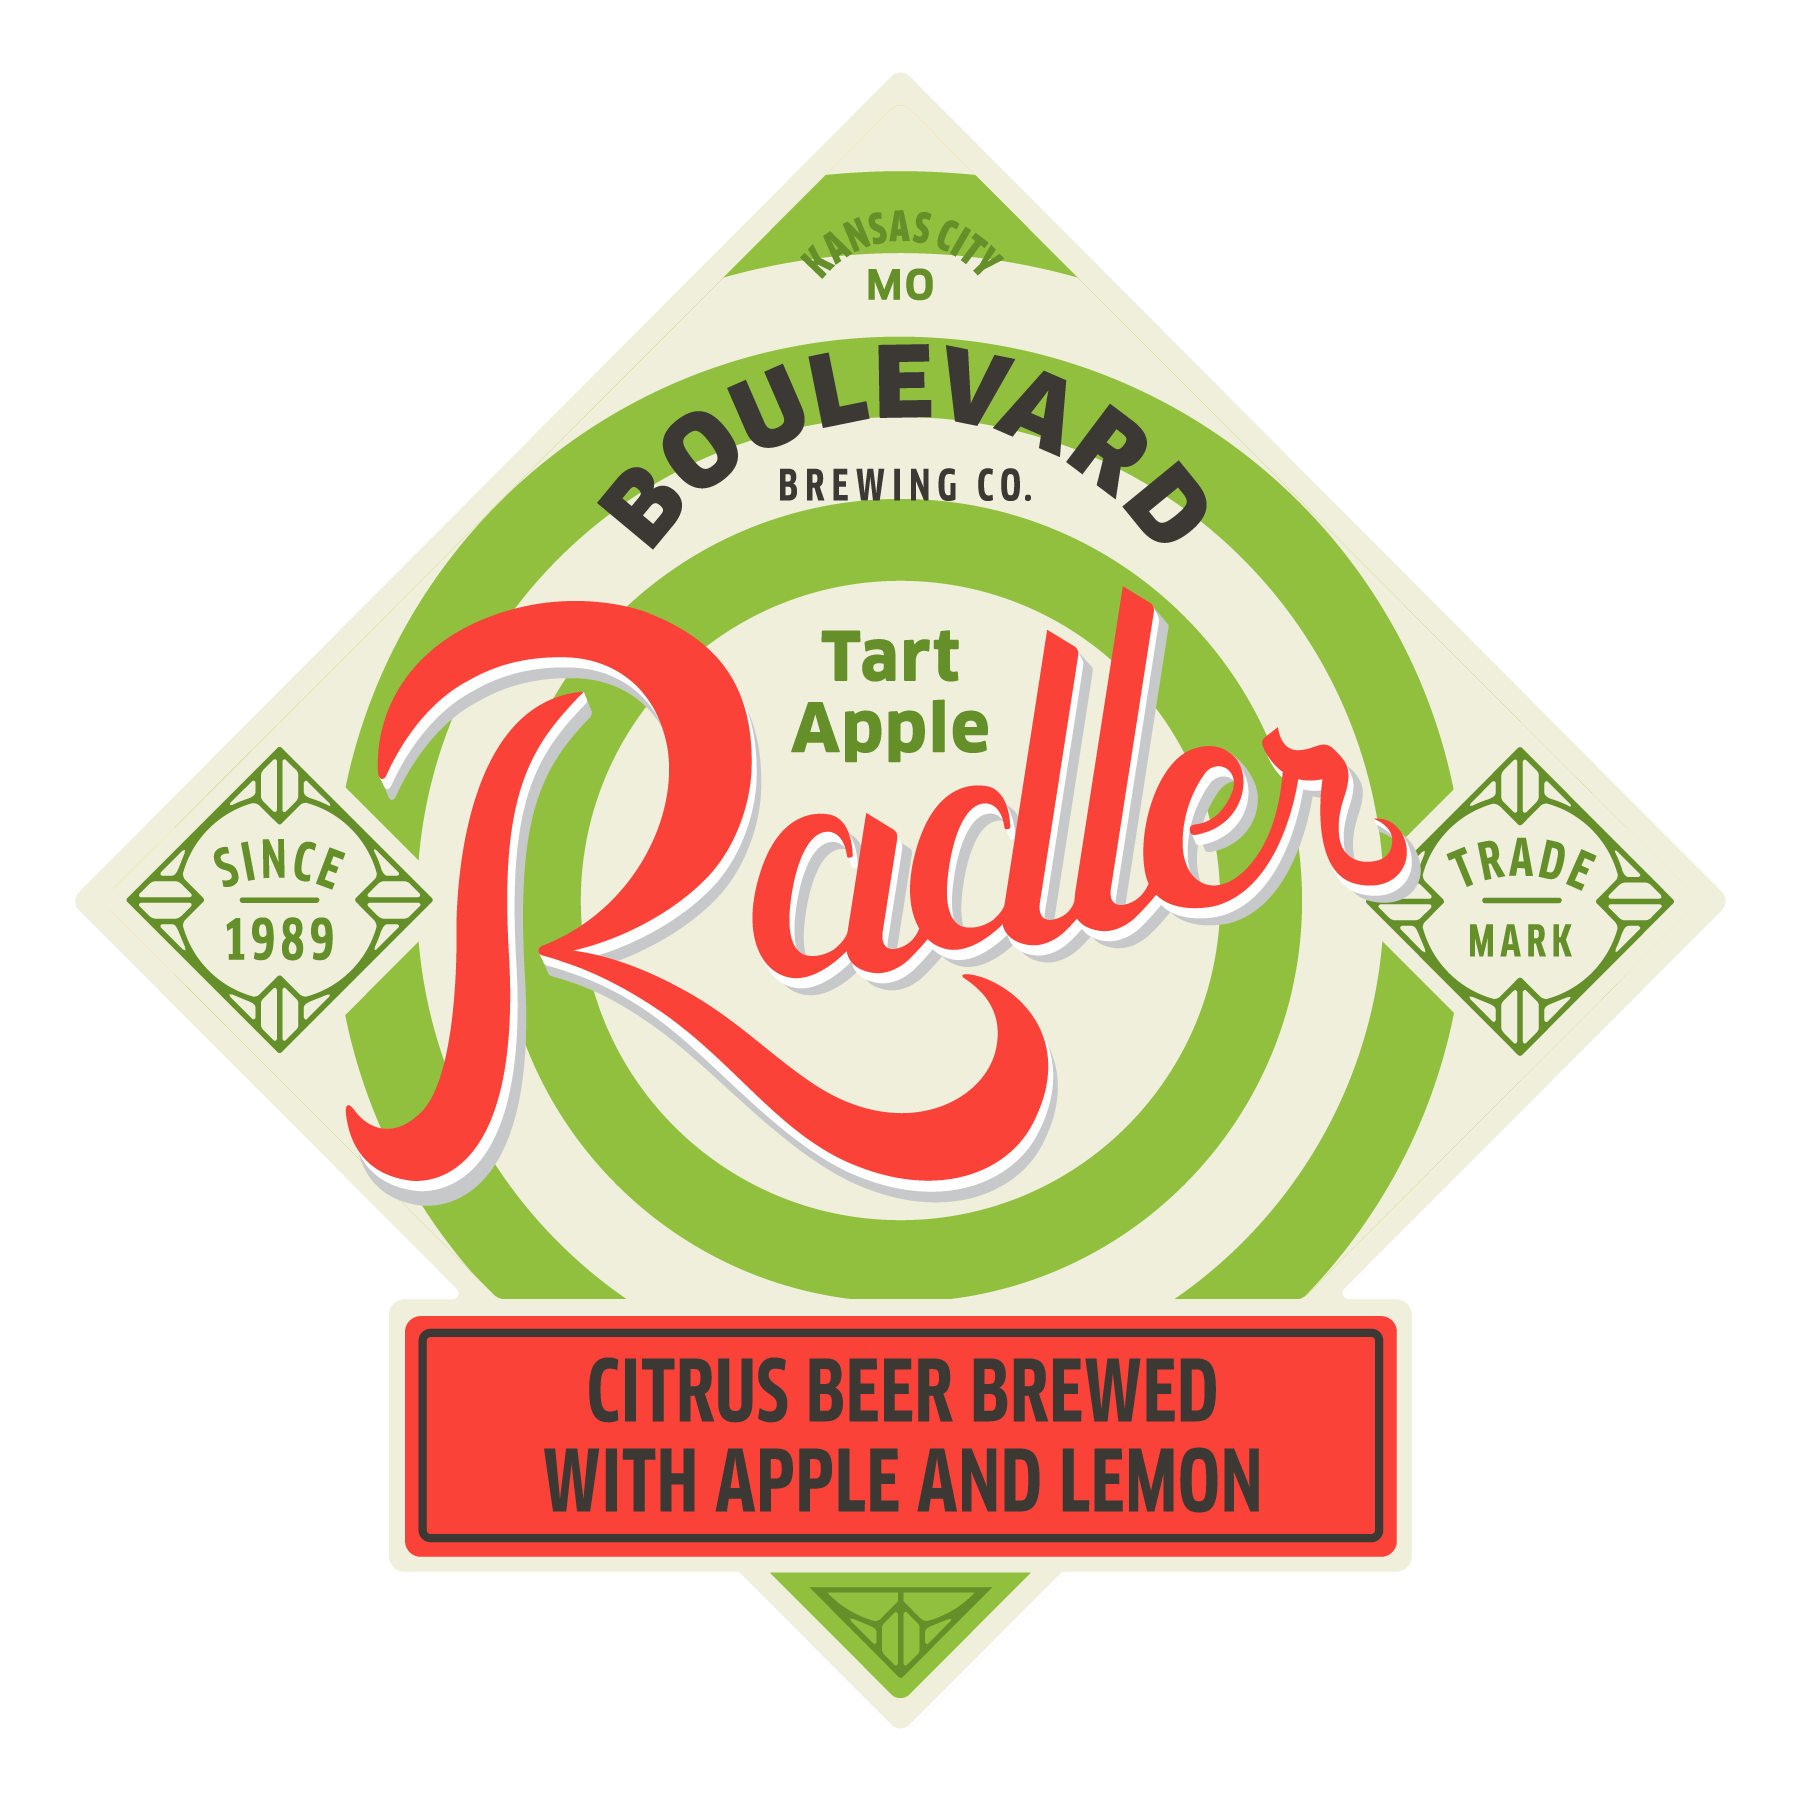 Tart Apple Radler